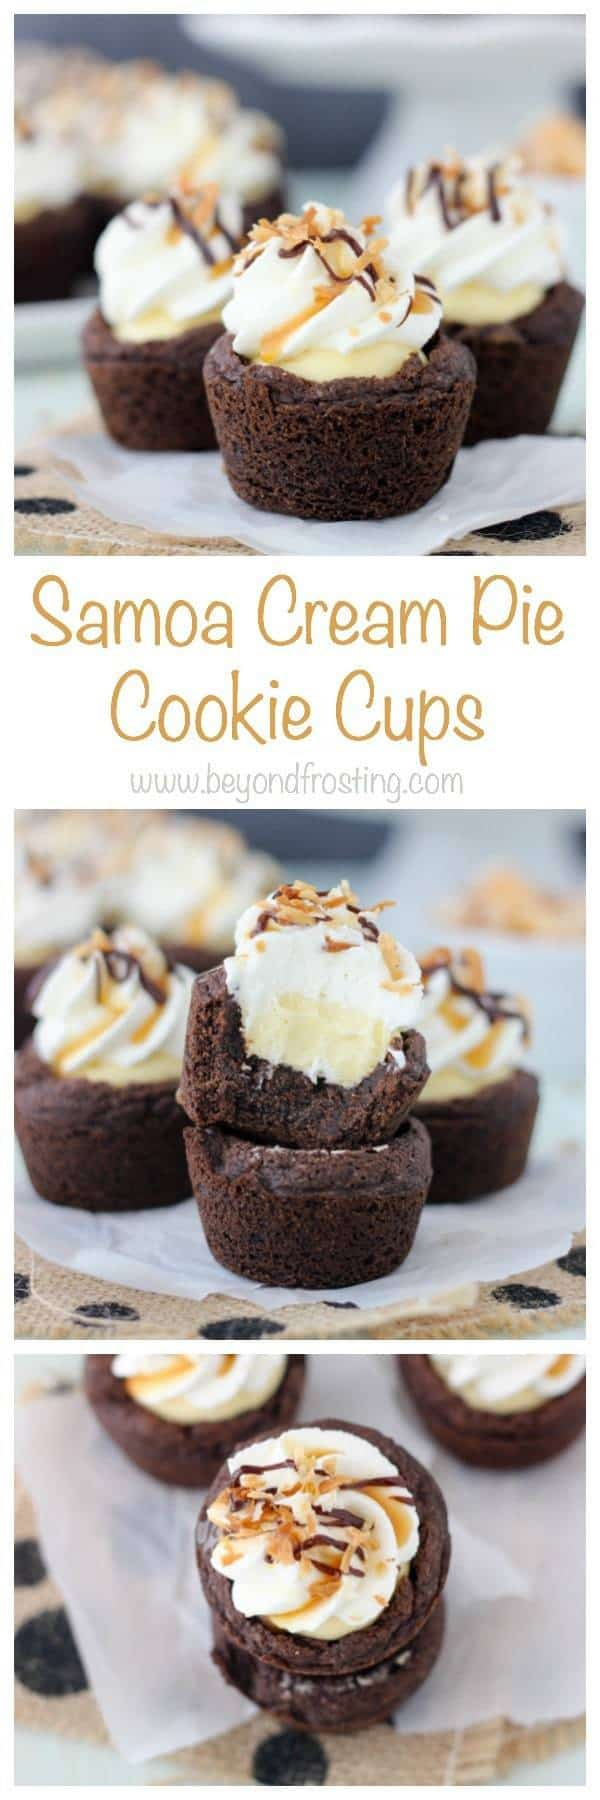 These Samoa Cream Pie Cookie Cups are a chocolate pudding cookie filled with a vanilla-caramel mousse and topped with whipped cream, toasted coconut and plenty of chocolate sauce and caramel. These are the next best thing besides samoa cookies